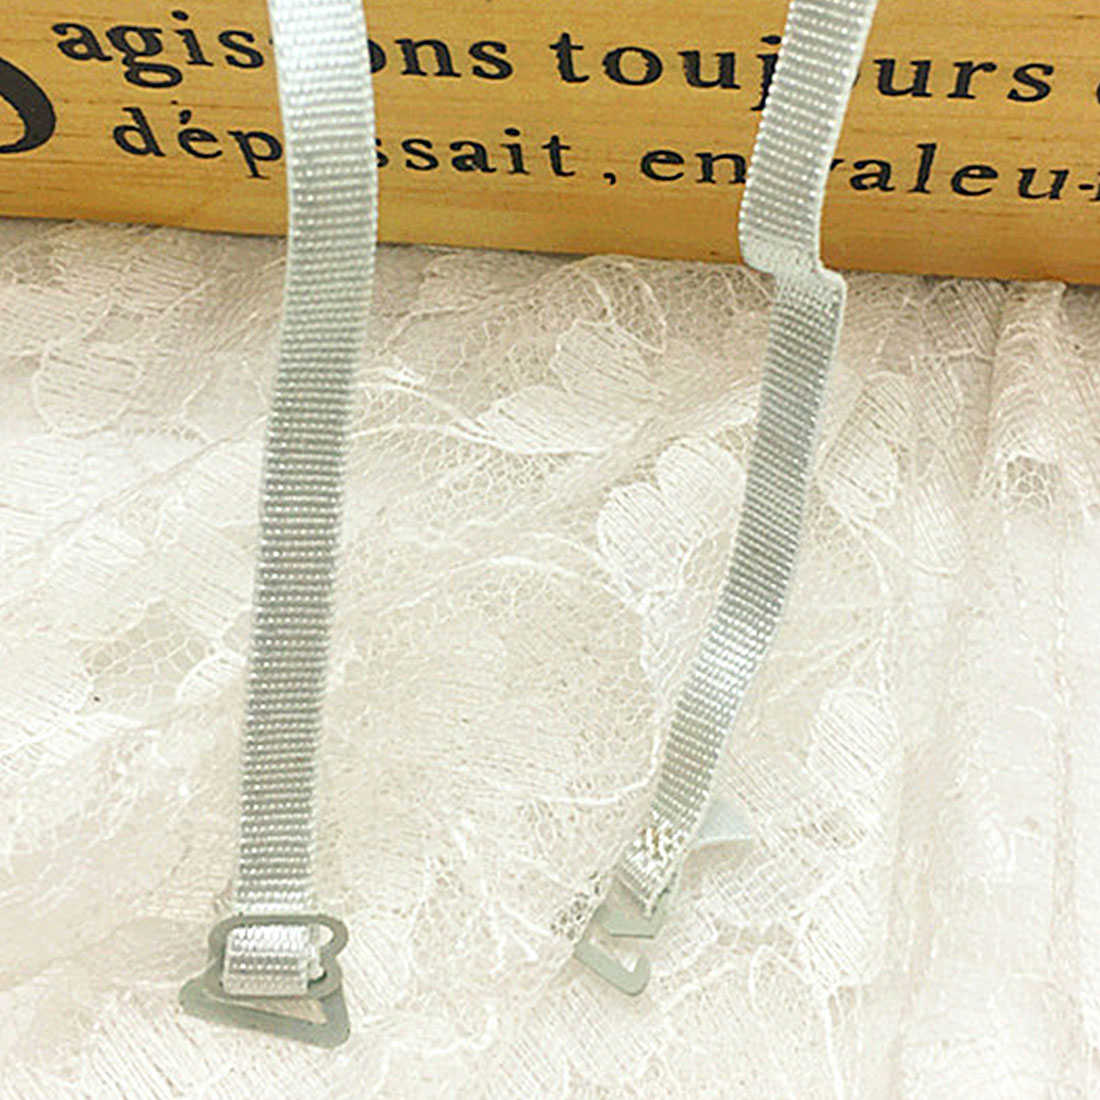 Hot 1 Pair Elastic Bra Strap Black White 1cm Width Nylon Elastic Fabric Hook Adjustable Bra Straps for Ladies With Metal Clips